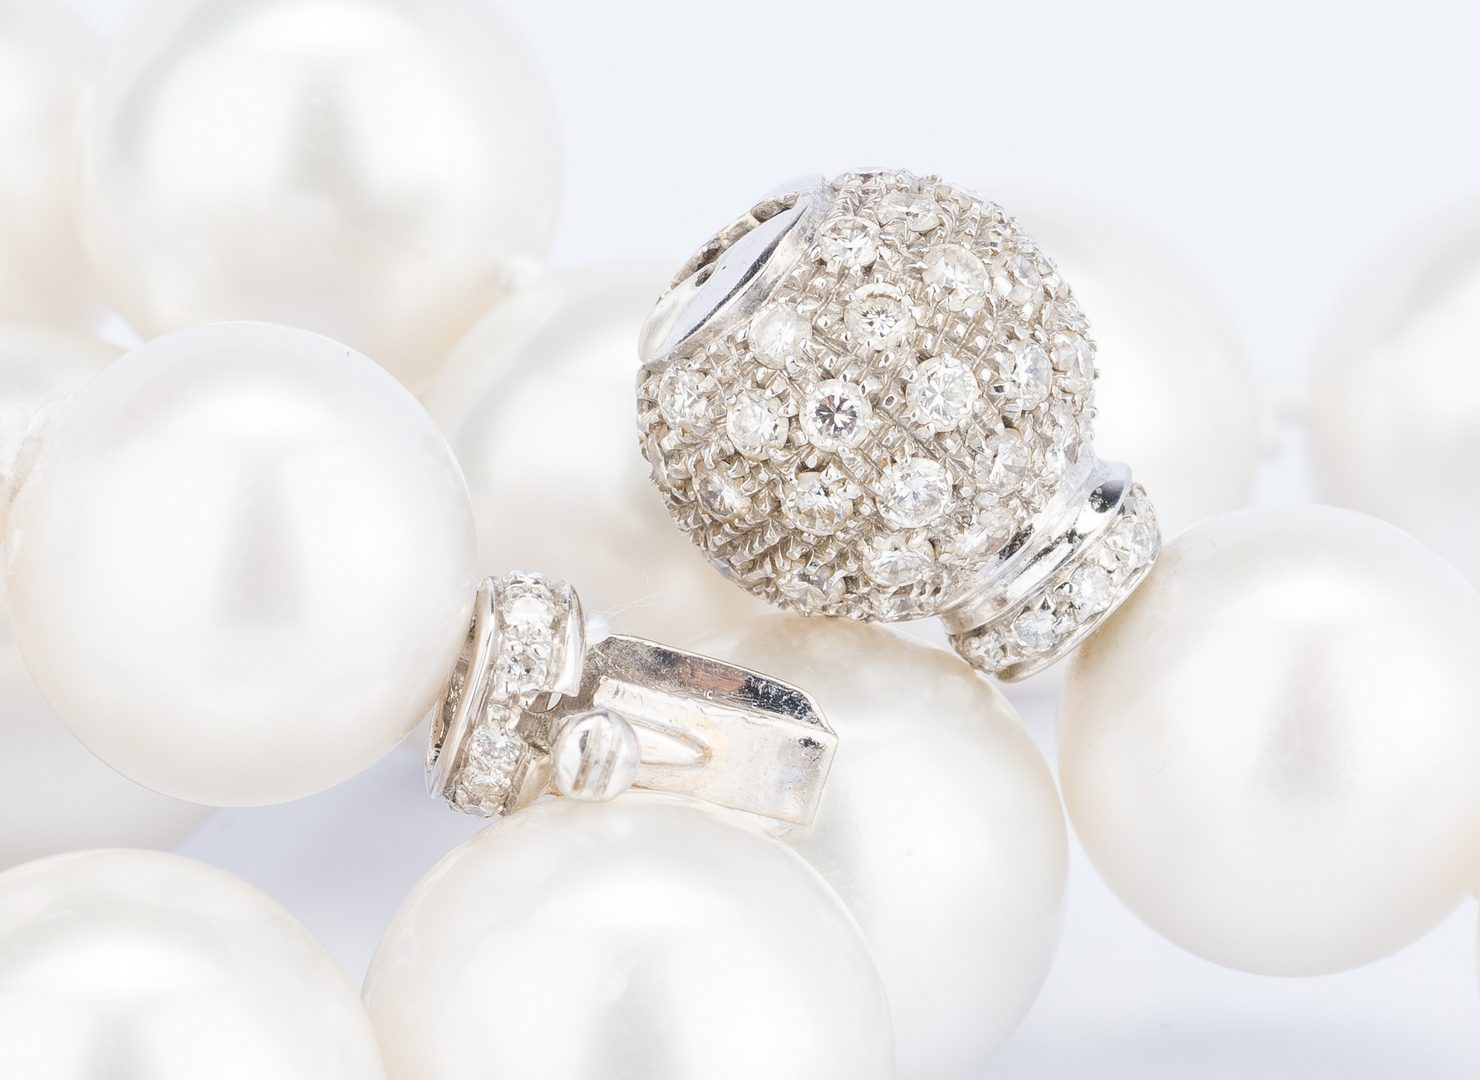 Lot 47: South Sea Pearl Necklace, 13.1-16.6mm